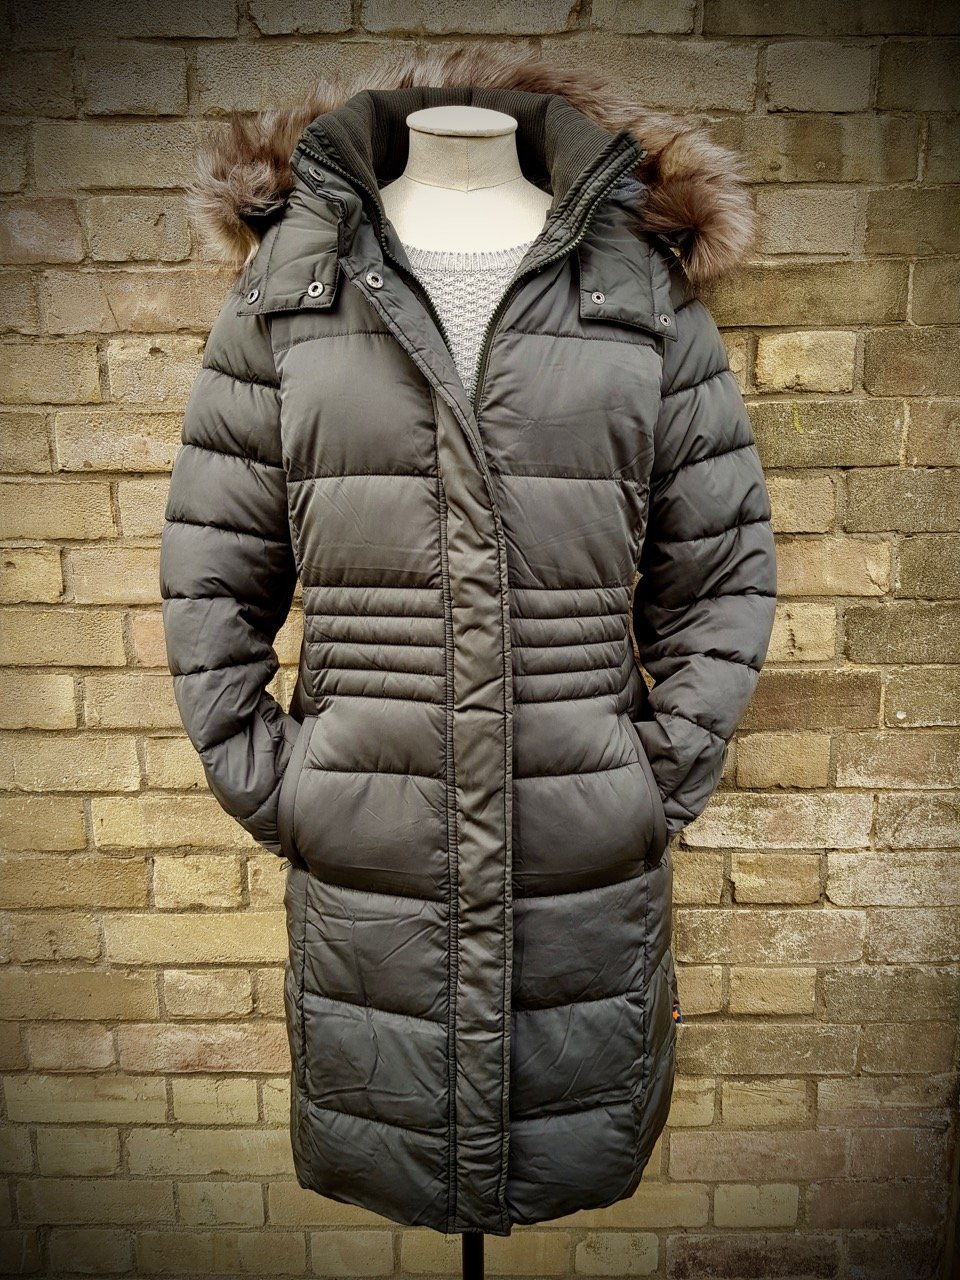 Thirlmere Long Padded Coat - £135